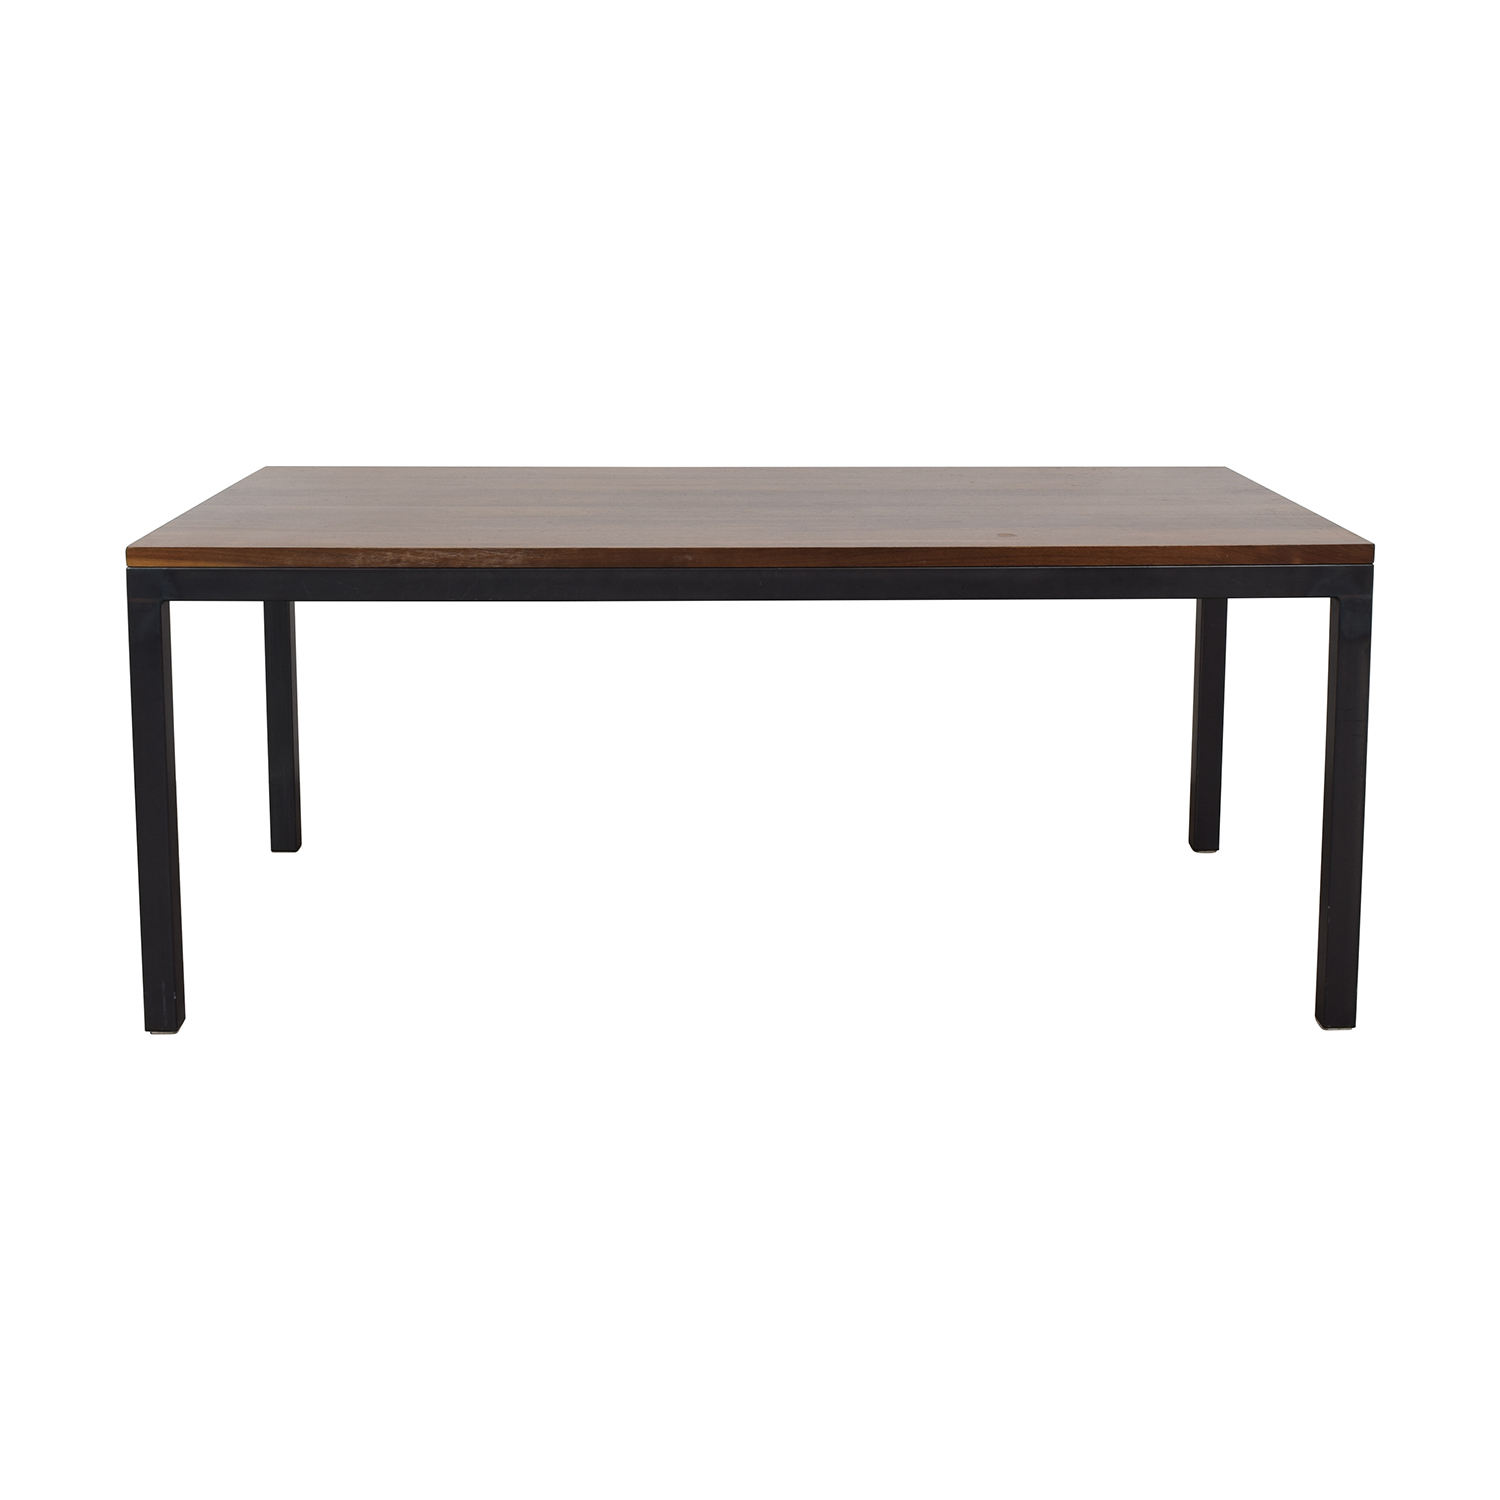 Room & Board Room & Board Walnut Parsons Table with Natural Steel for sale